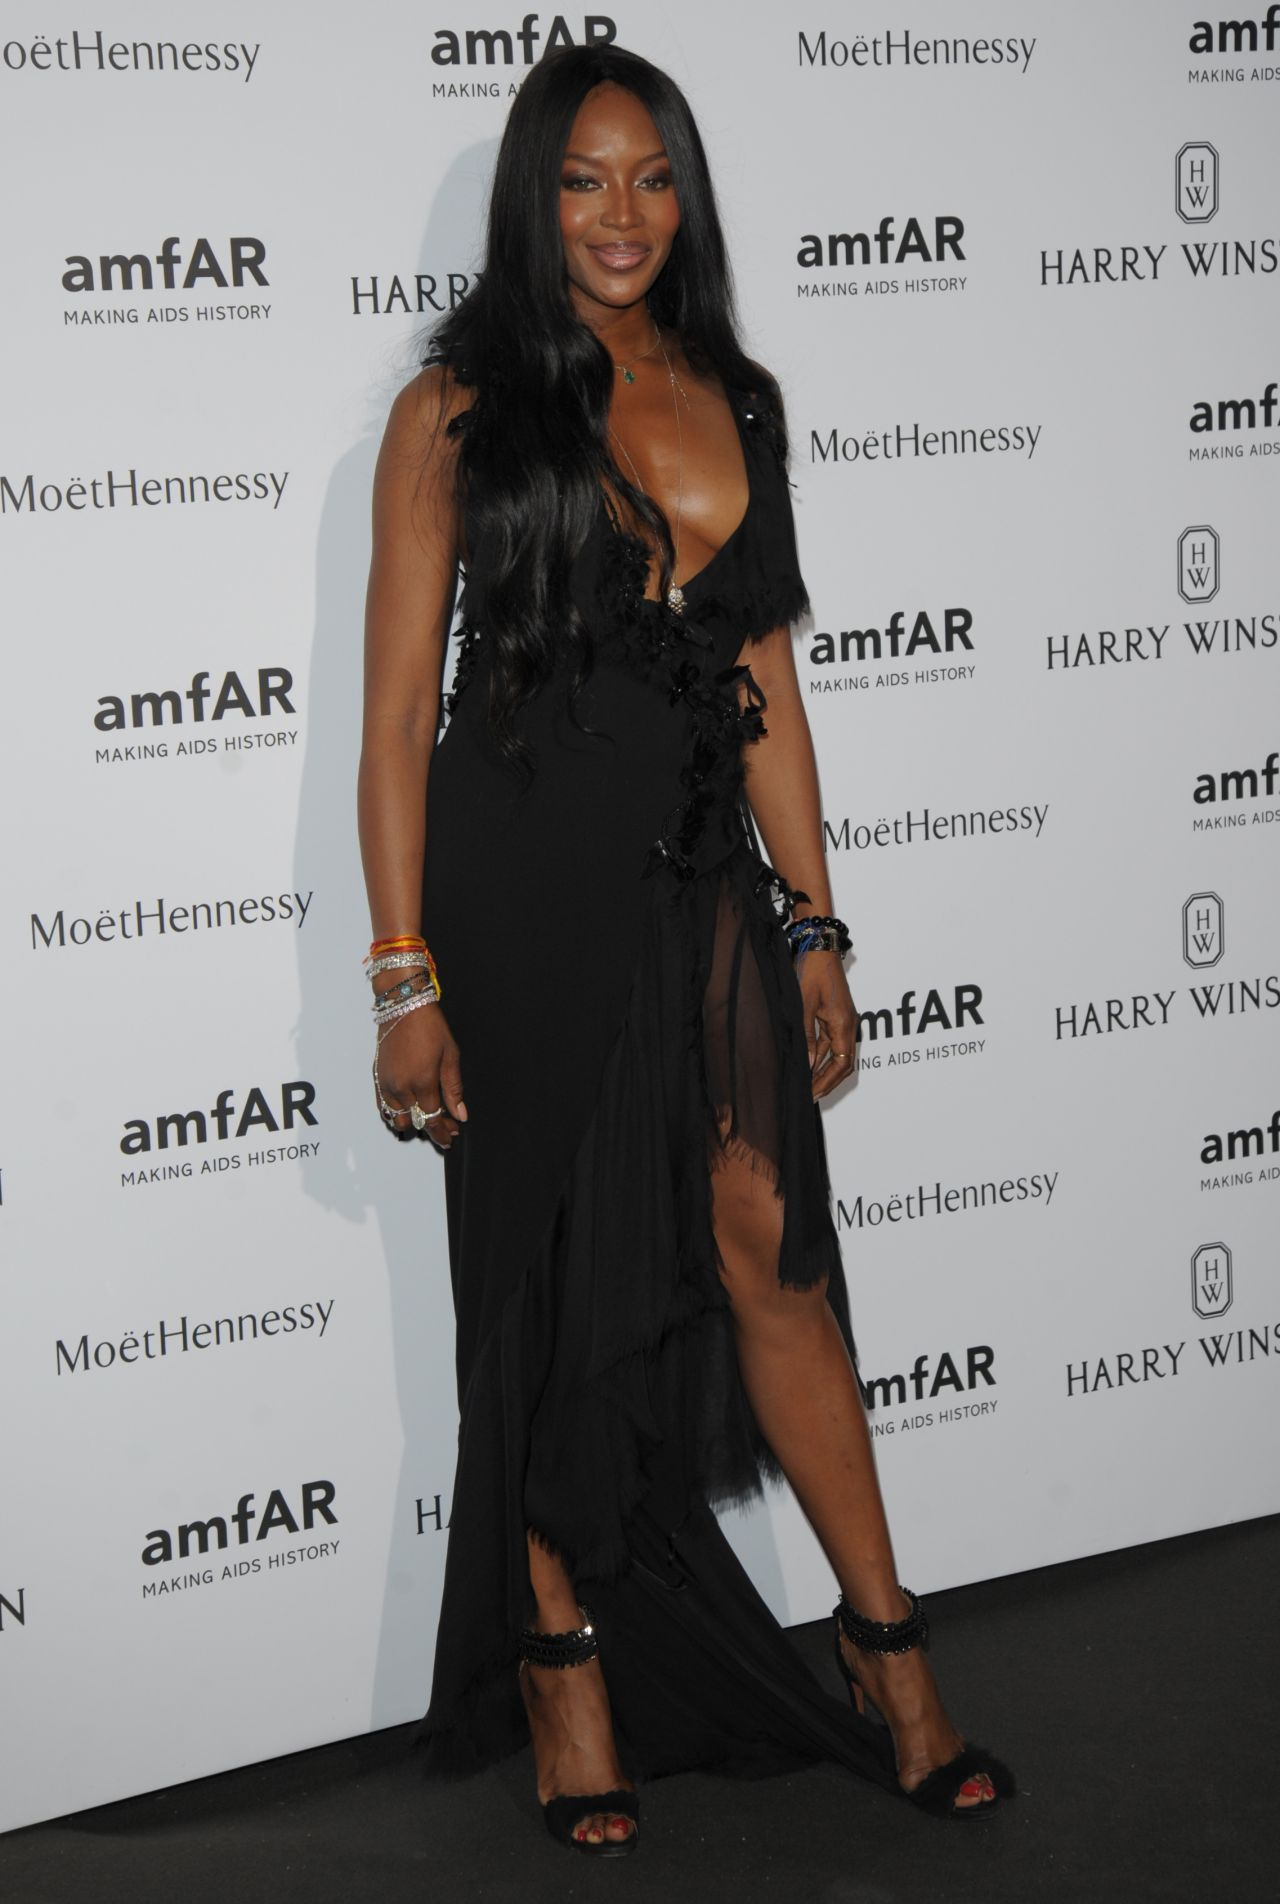 naomi-campbel-on-red-carpet-amfar-dinner-in-paris-july-2015_3